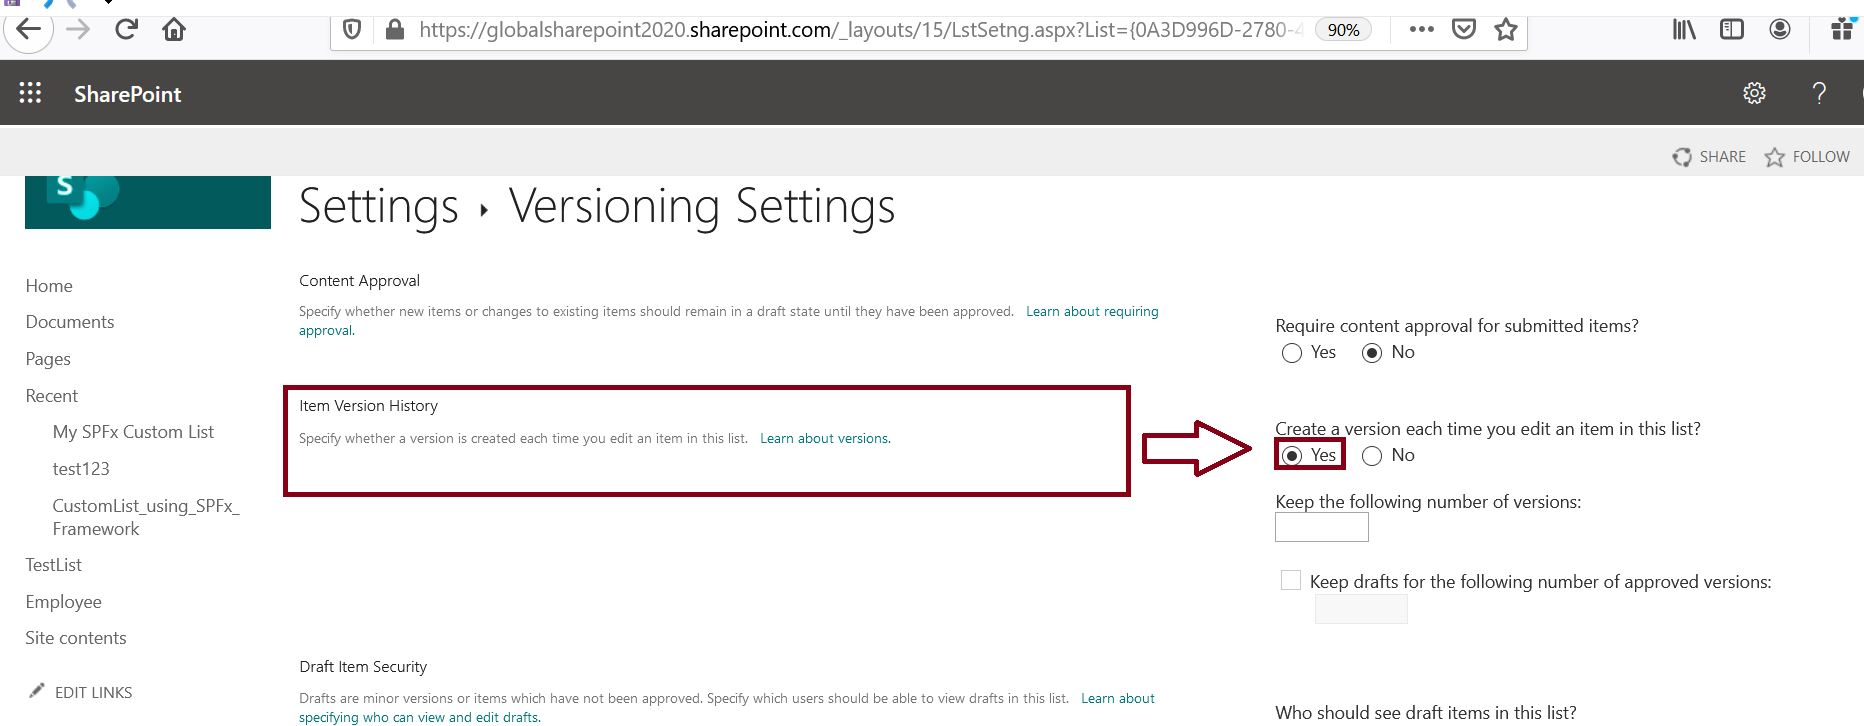 Track comments version history in SharePoint Online list   Global ...